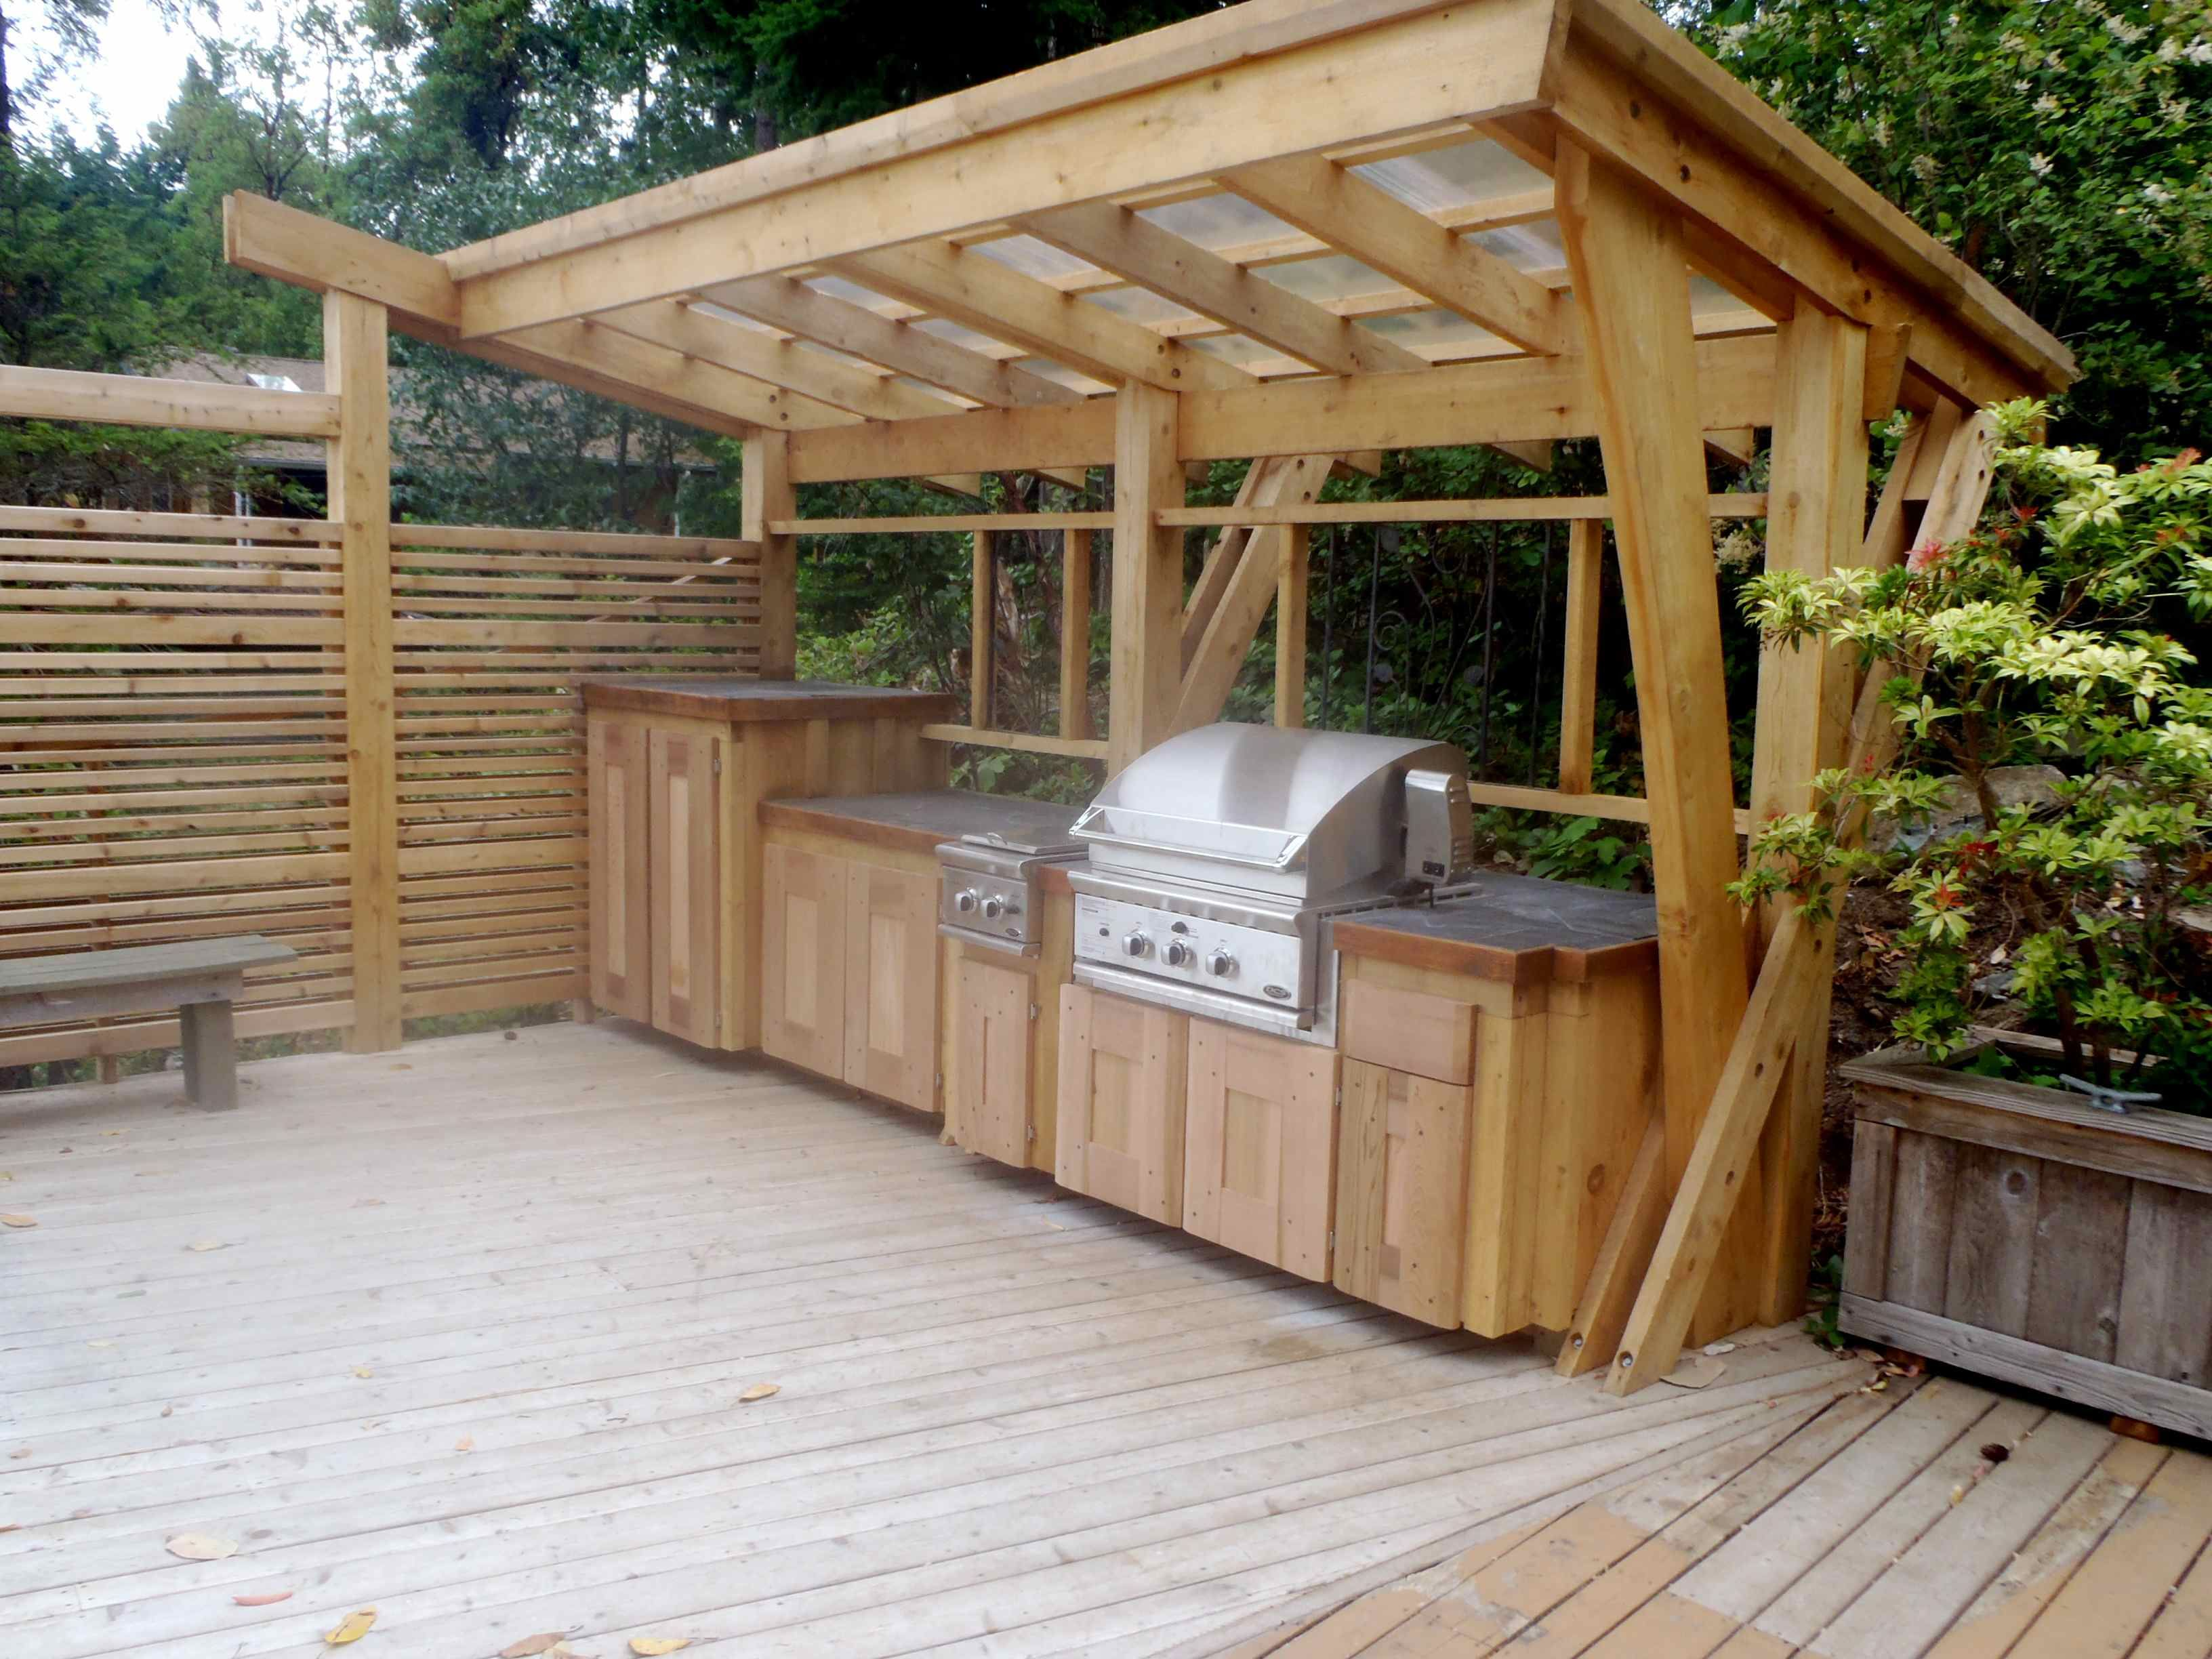 Outdoor kitchen cedar bbq cover outdoor for Backyard barbecues outdoor kitchen